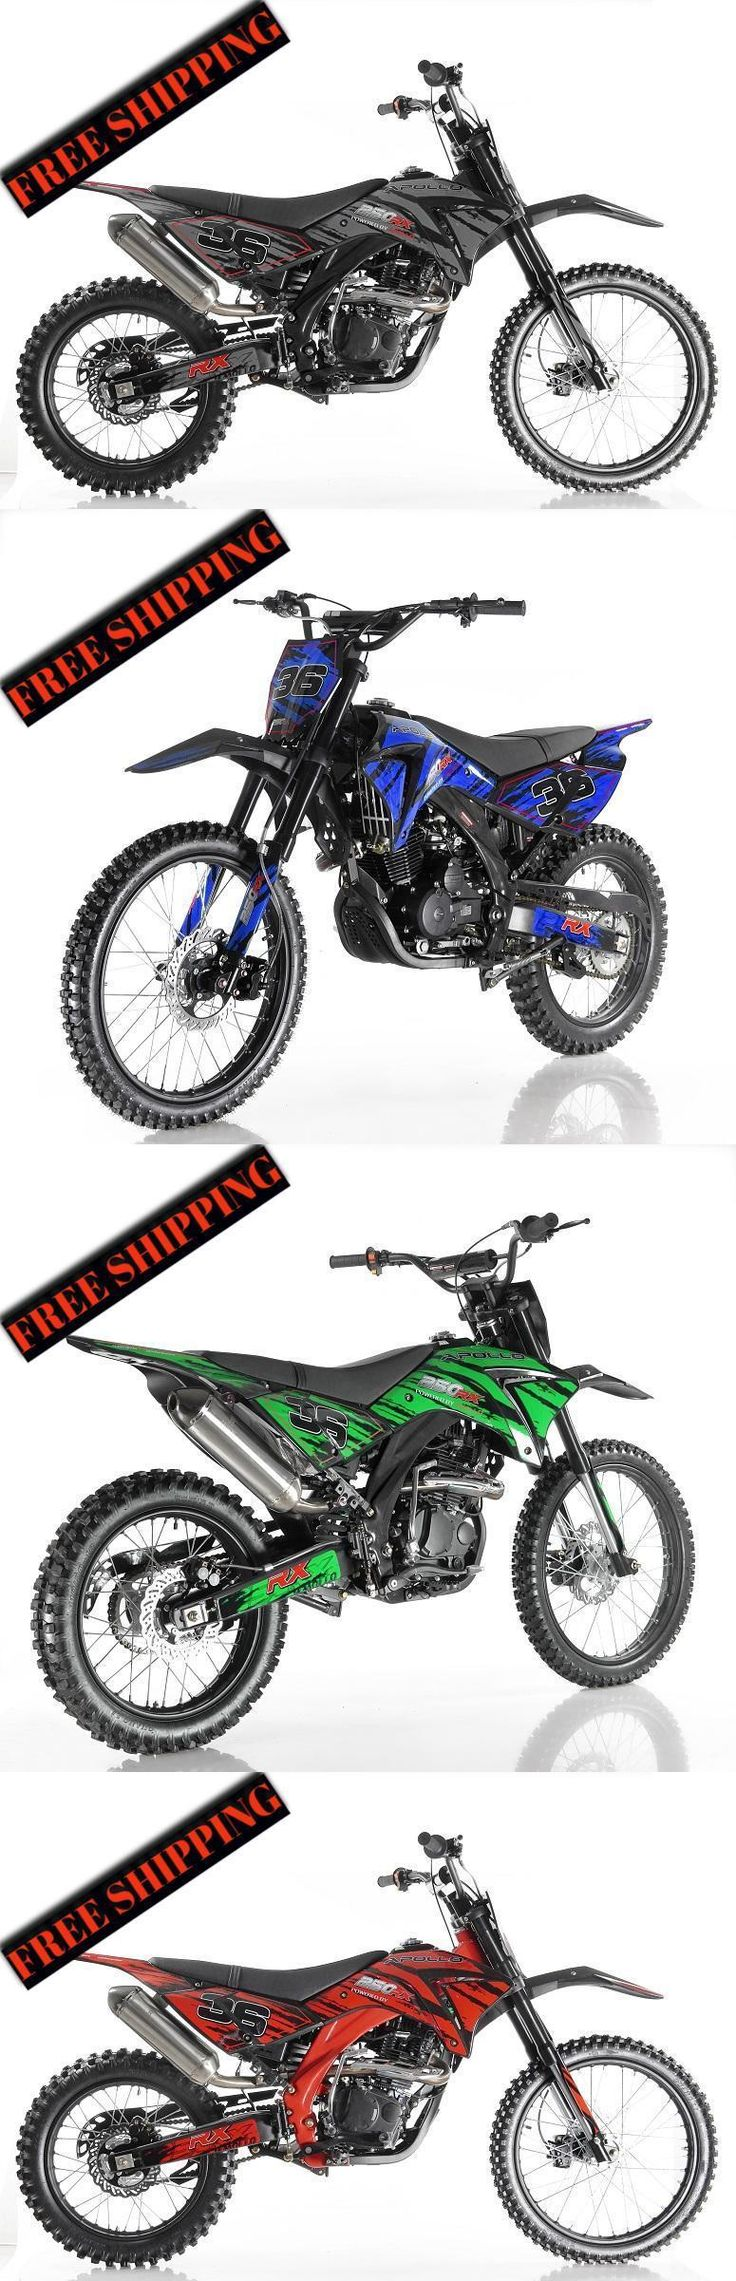 motorcycles And scooters: 2017 Other Makes Apollo Dirt Bike 250 New Apollo Dirt Bike 250 Cc For Sale Full Size Off Road Dirt Bike 250Cc Sale New -> BUY IT NOW ONLY: $1549 on eBay!